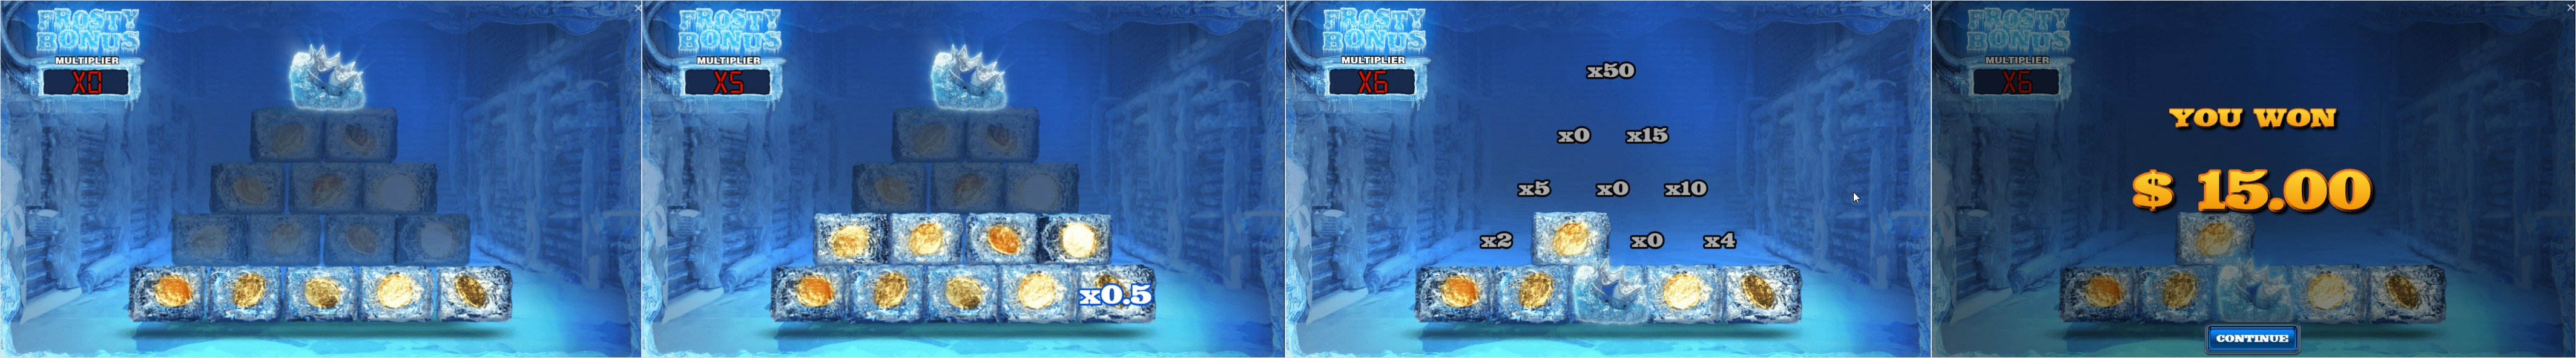 Fire vs Ice 2 Softgamings